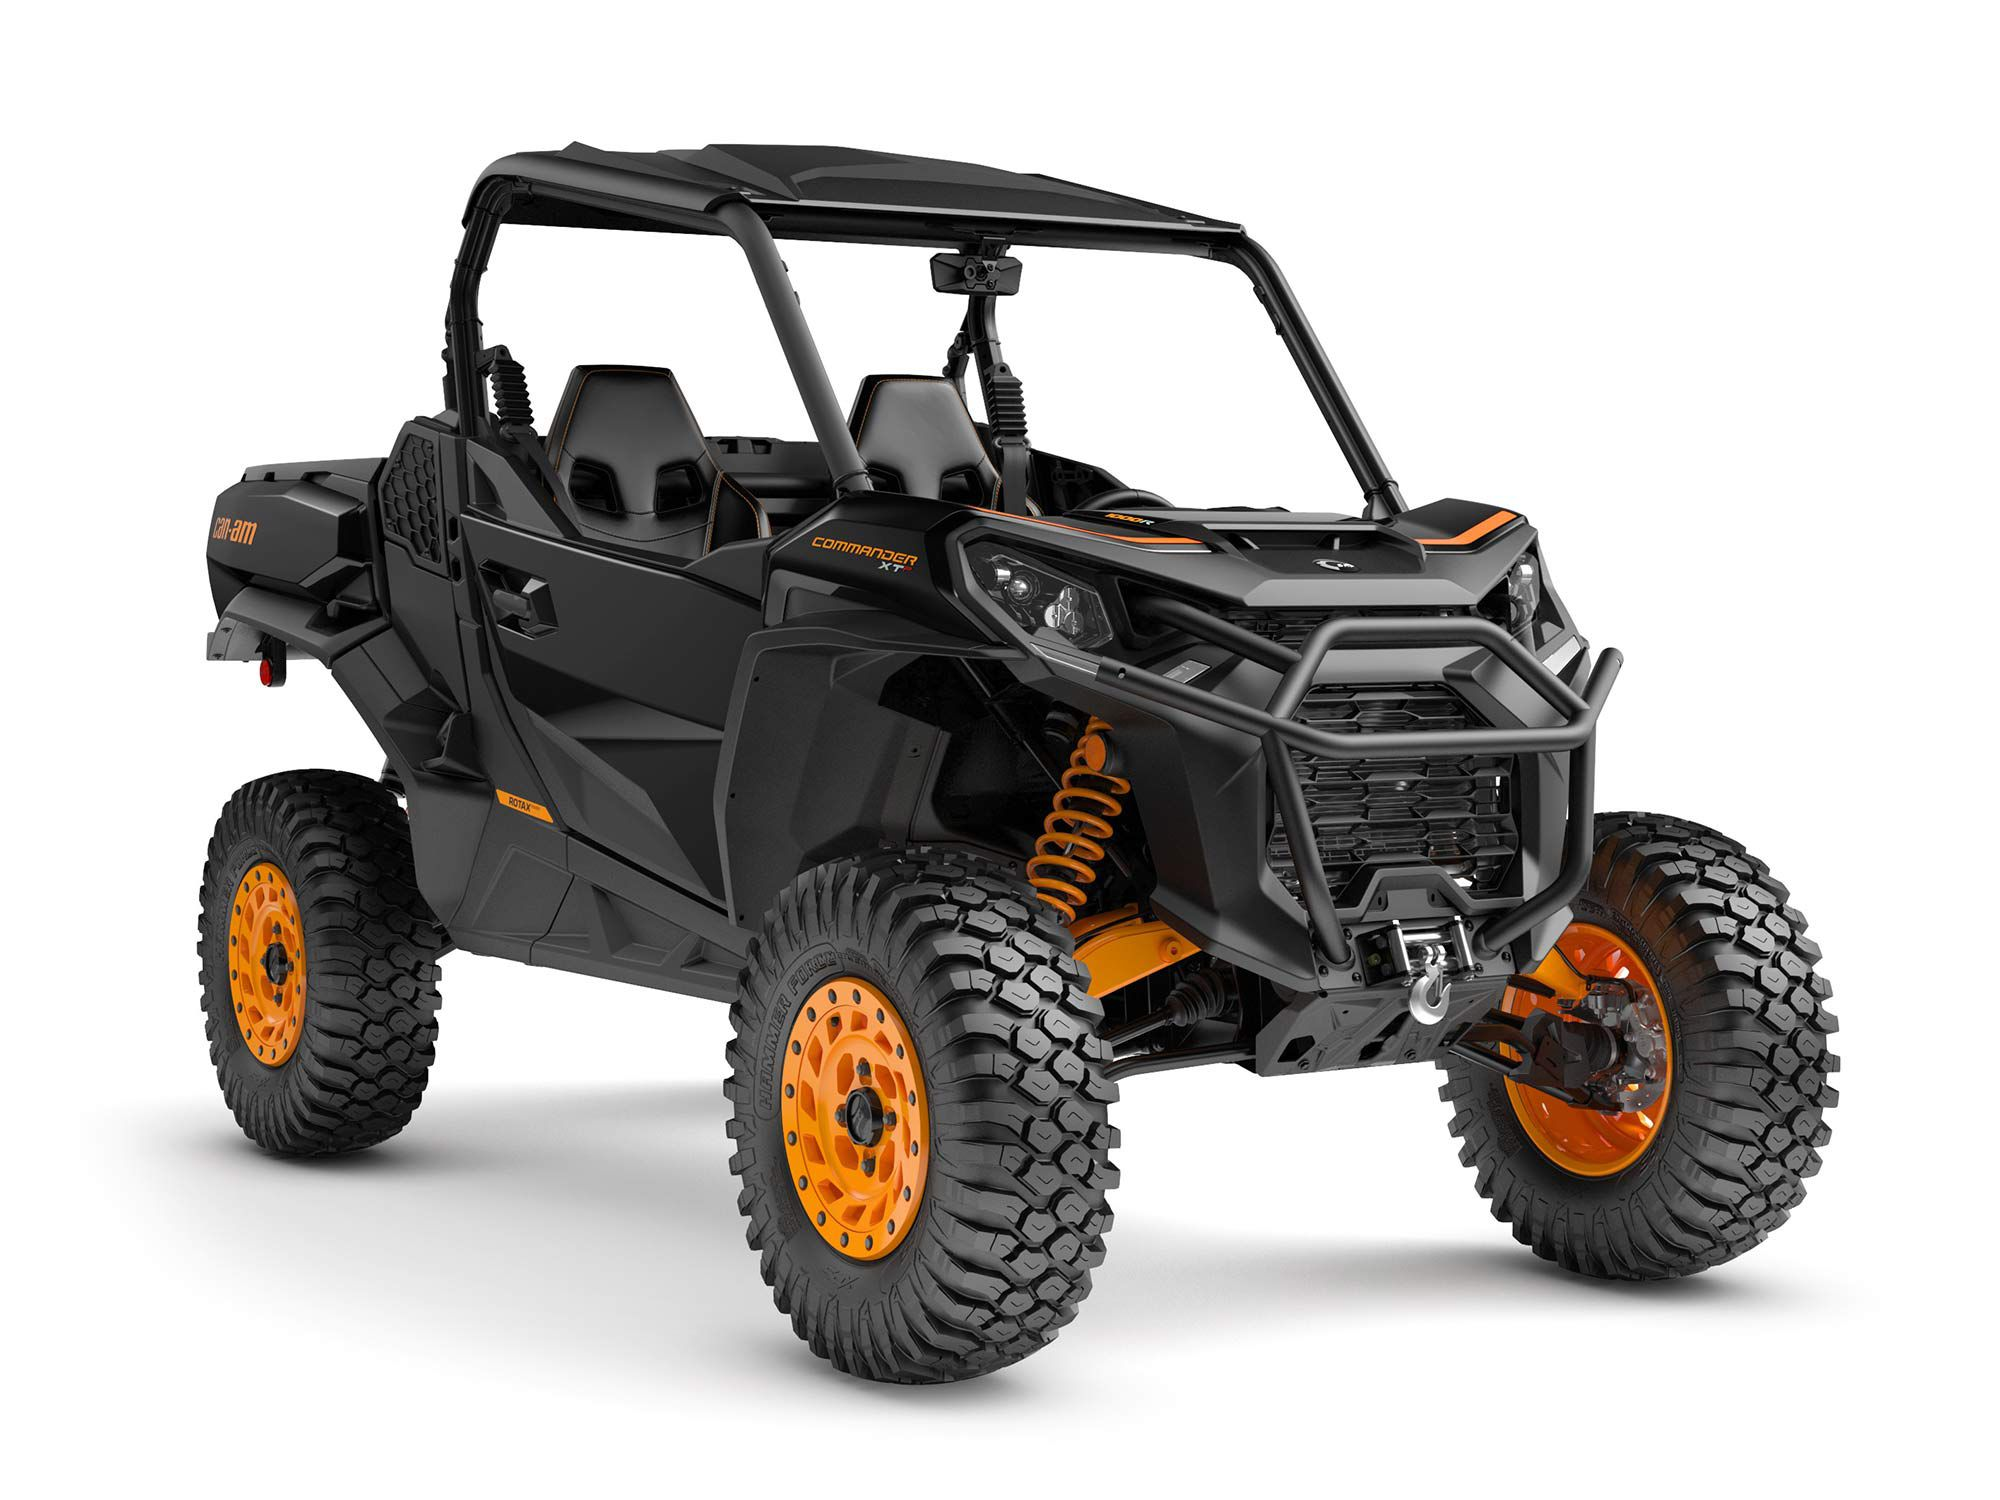 The 2022 Can-Am Commander XT-P sits at the top of the company's sport-utility side-by-side offerings, with a long list of upgrades over the base model and 100 horsepower from a 976cc v-twin.